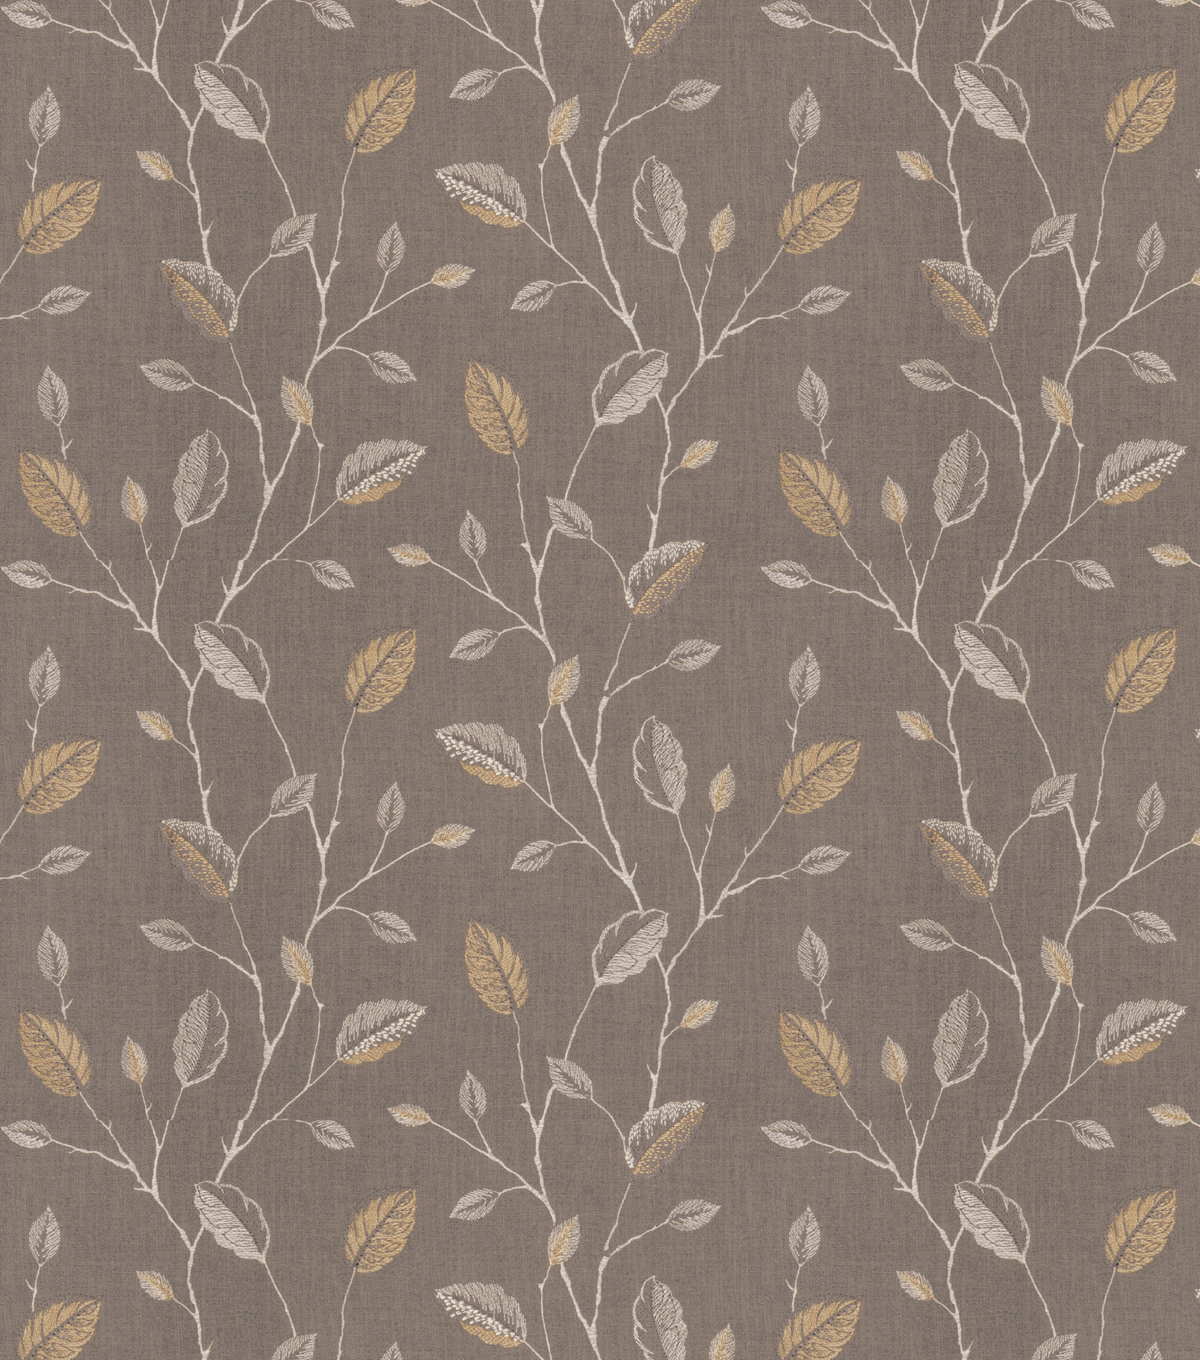 SMC Designs Lightweight Decor Fabric 54\u0022-Parody/Silver